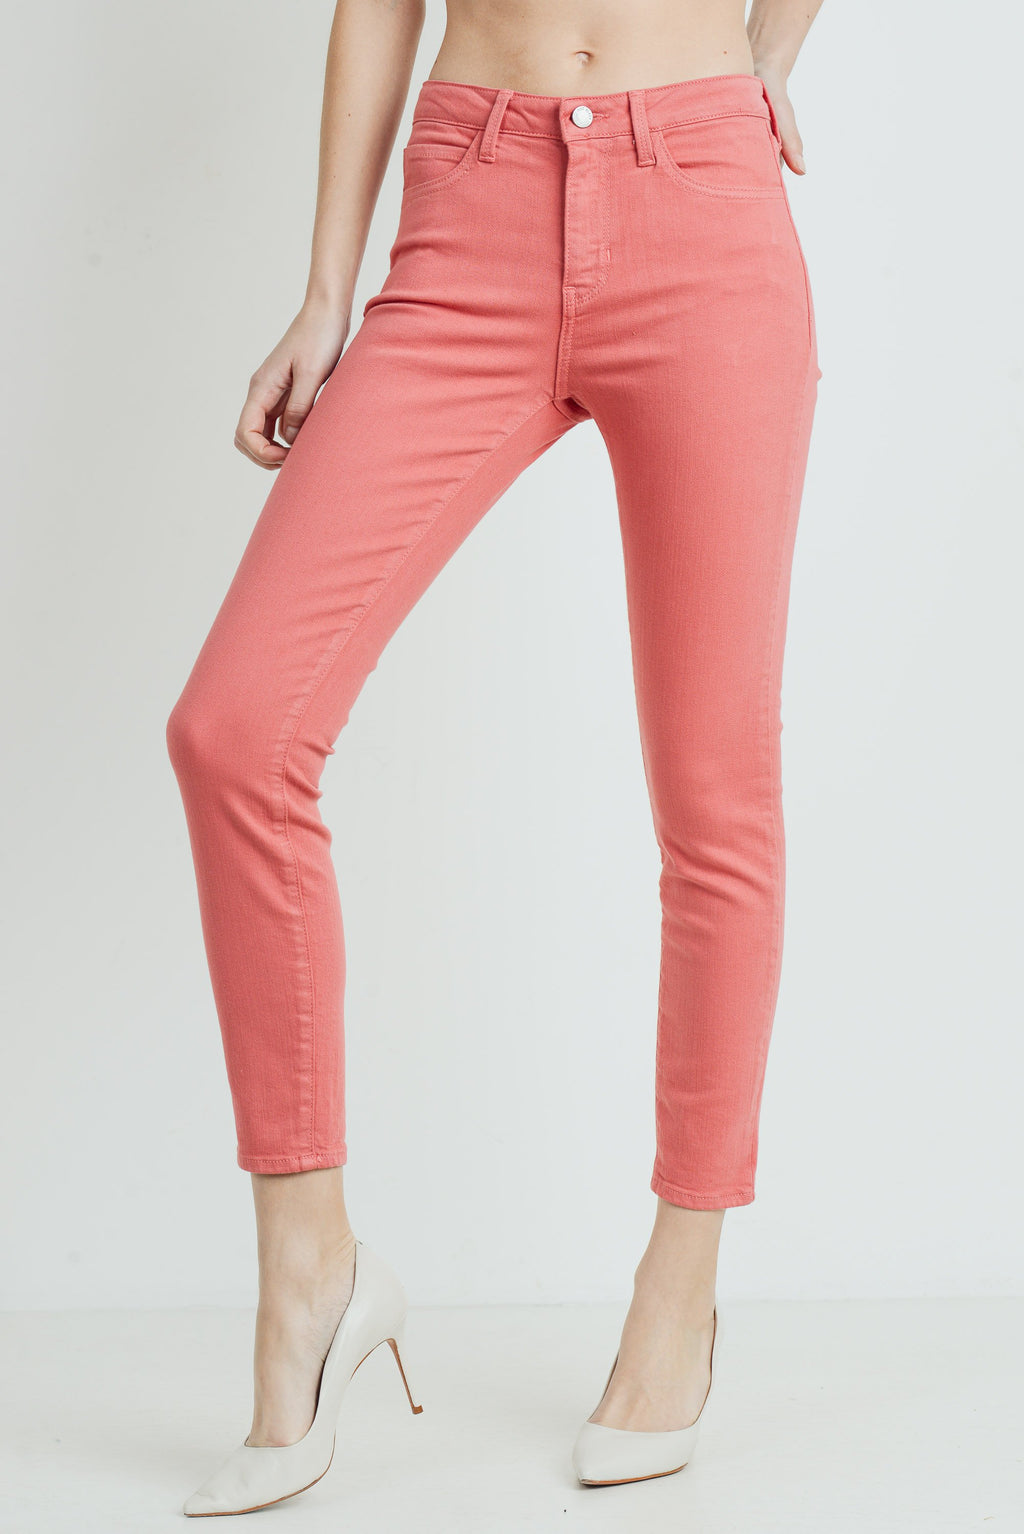 Classic Skinny Jeans in Strawberry Front